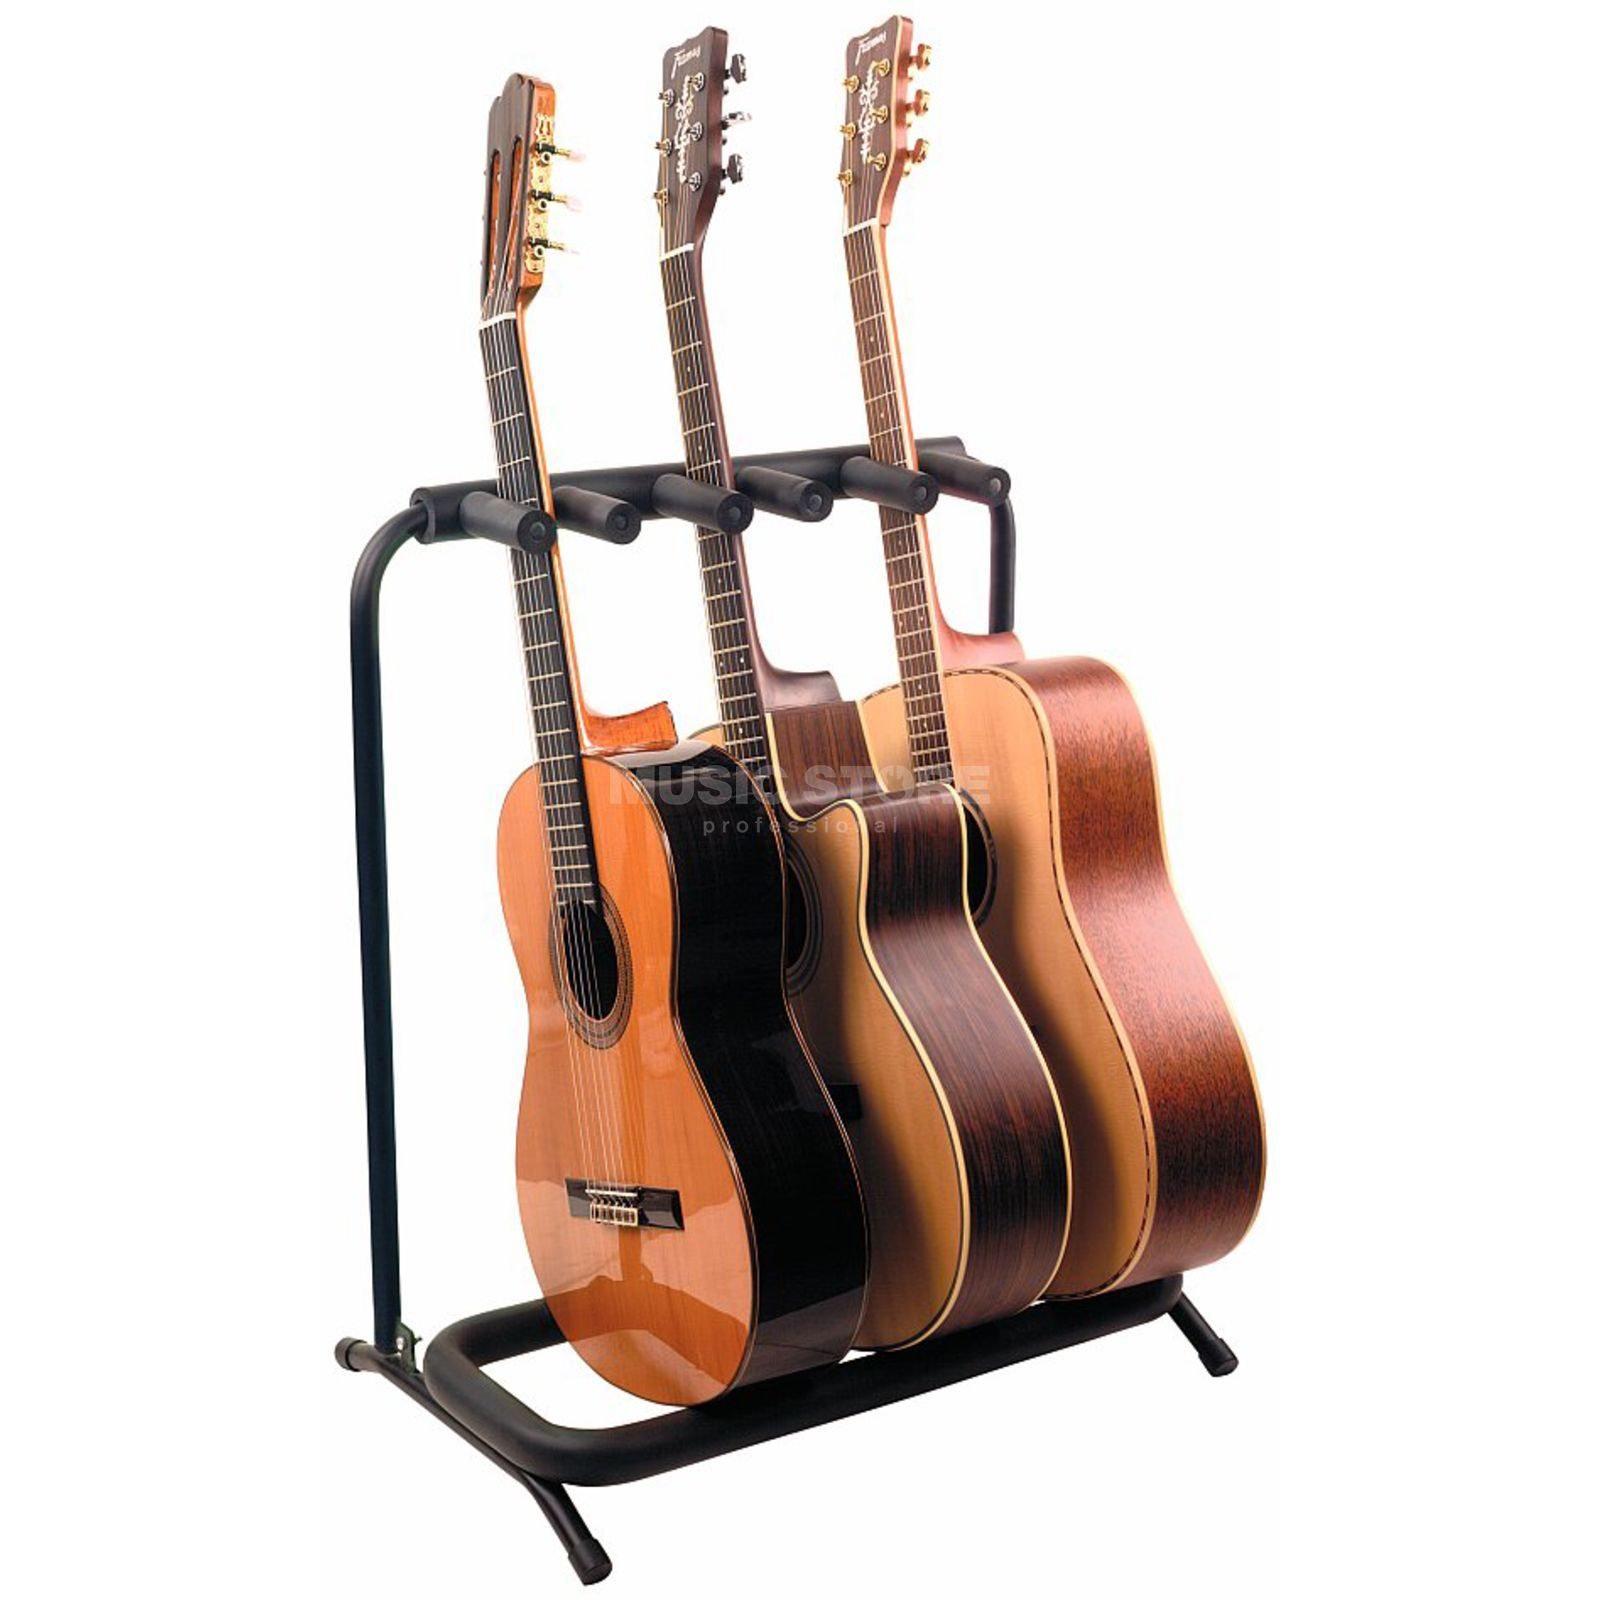 rockstand 3er multiple acoustic guitar rack stand rs 20870 b 2